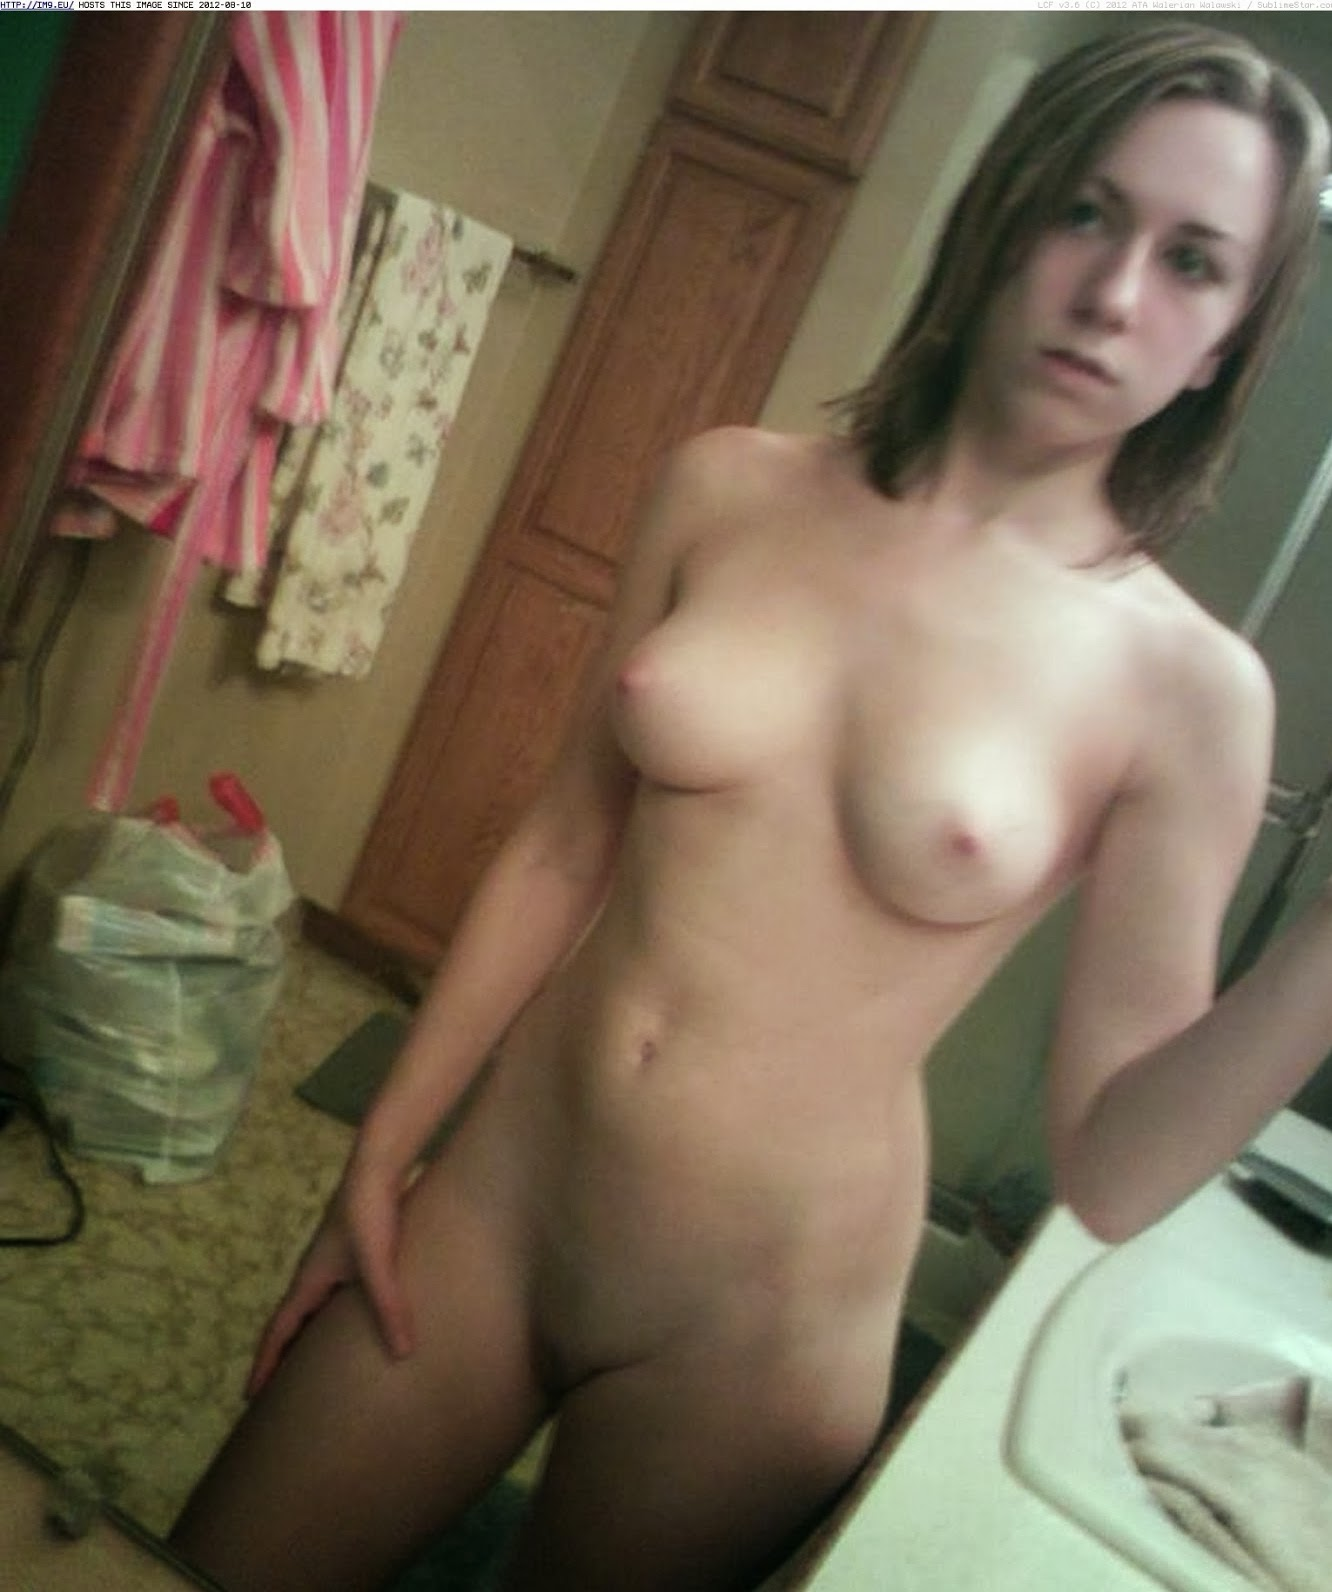 Agree, Self taken nude photo where can